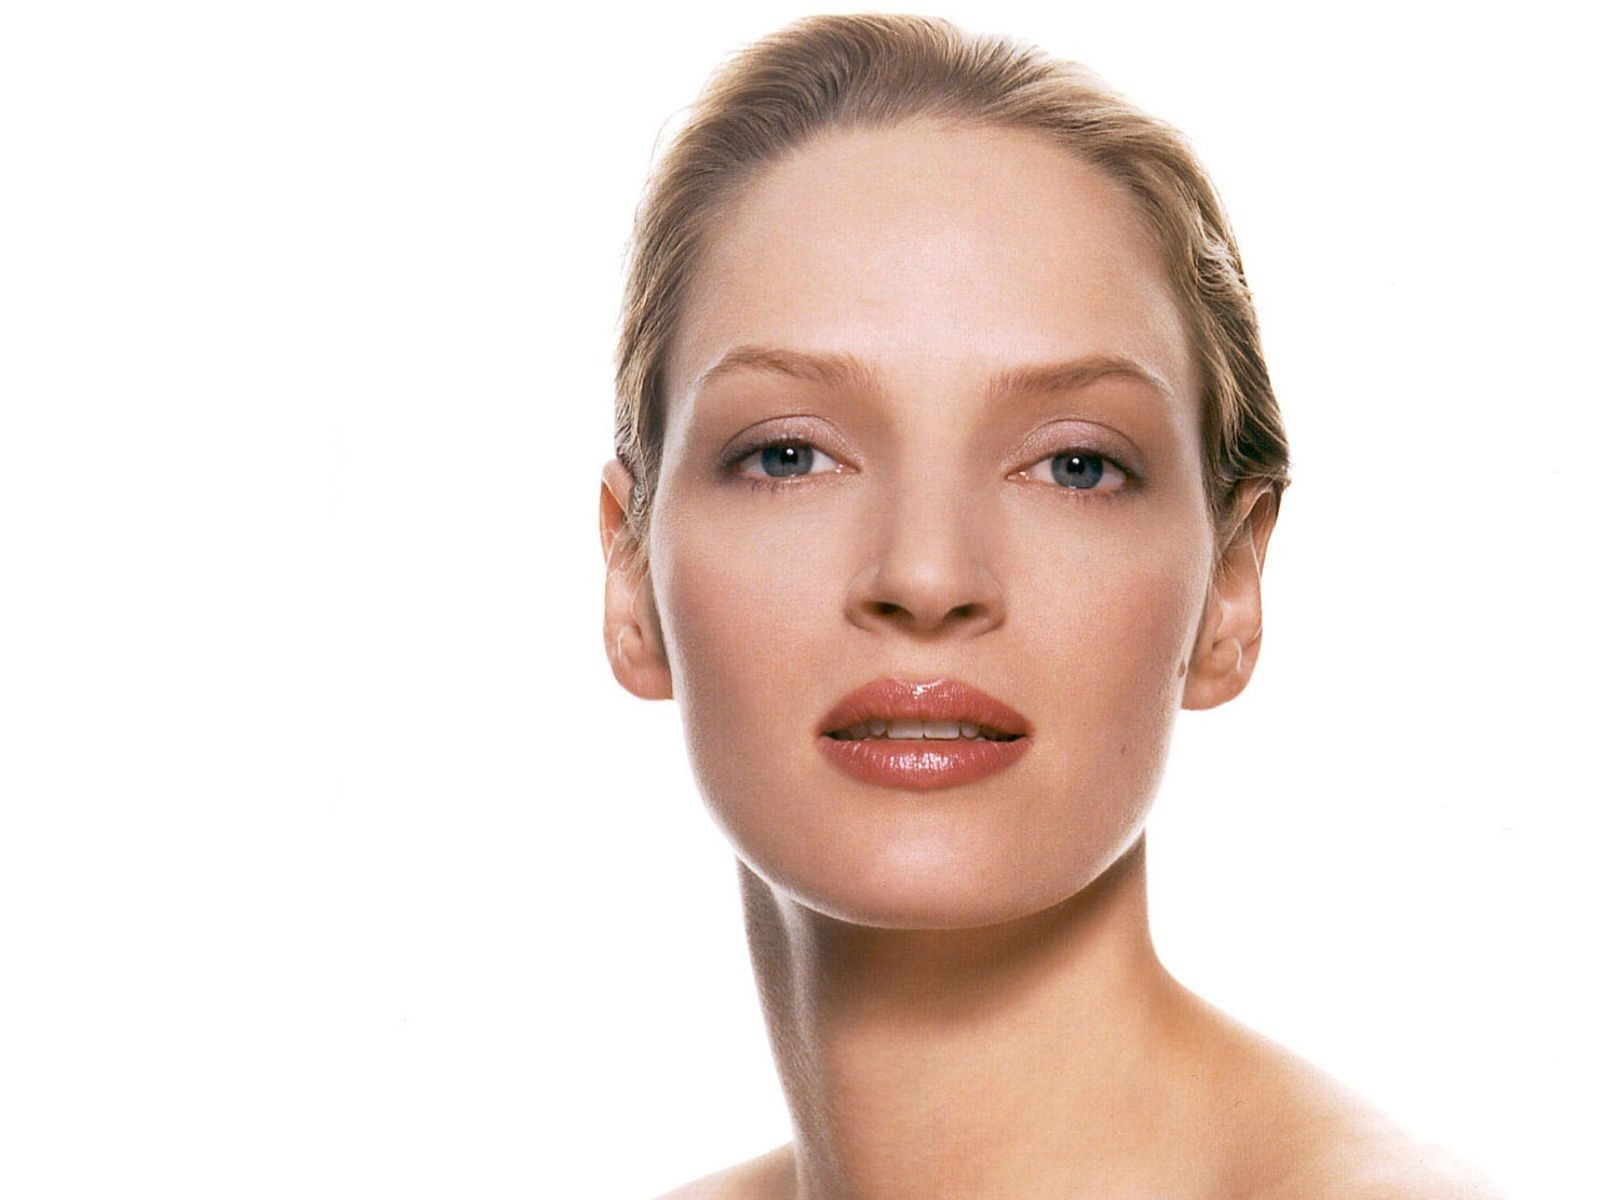 Wallpaper per il desktop di Uma Thurman.